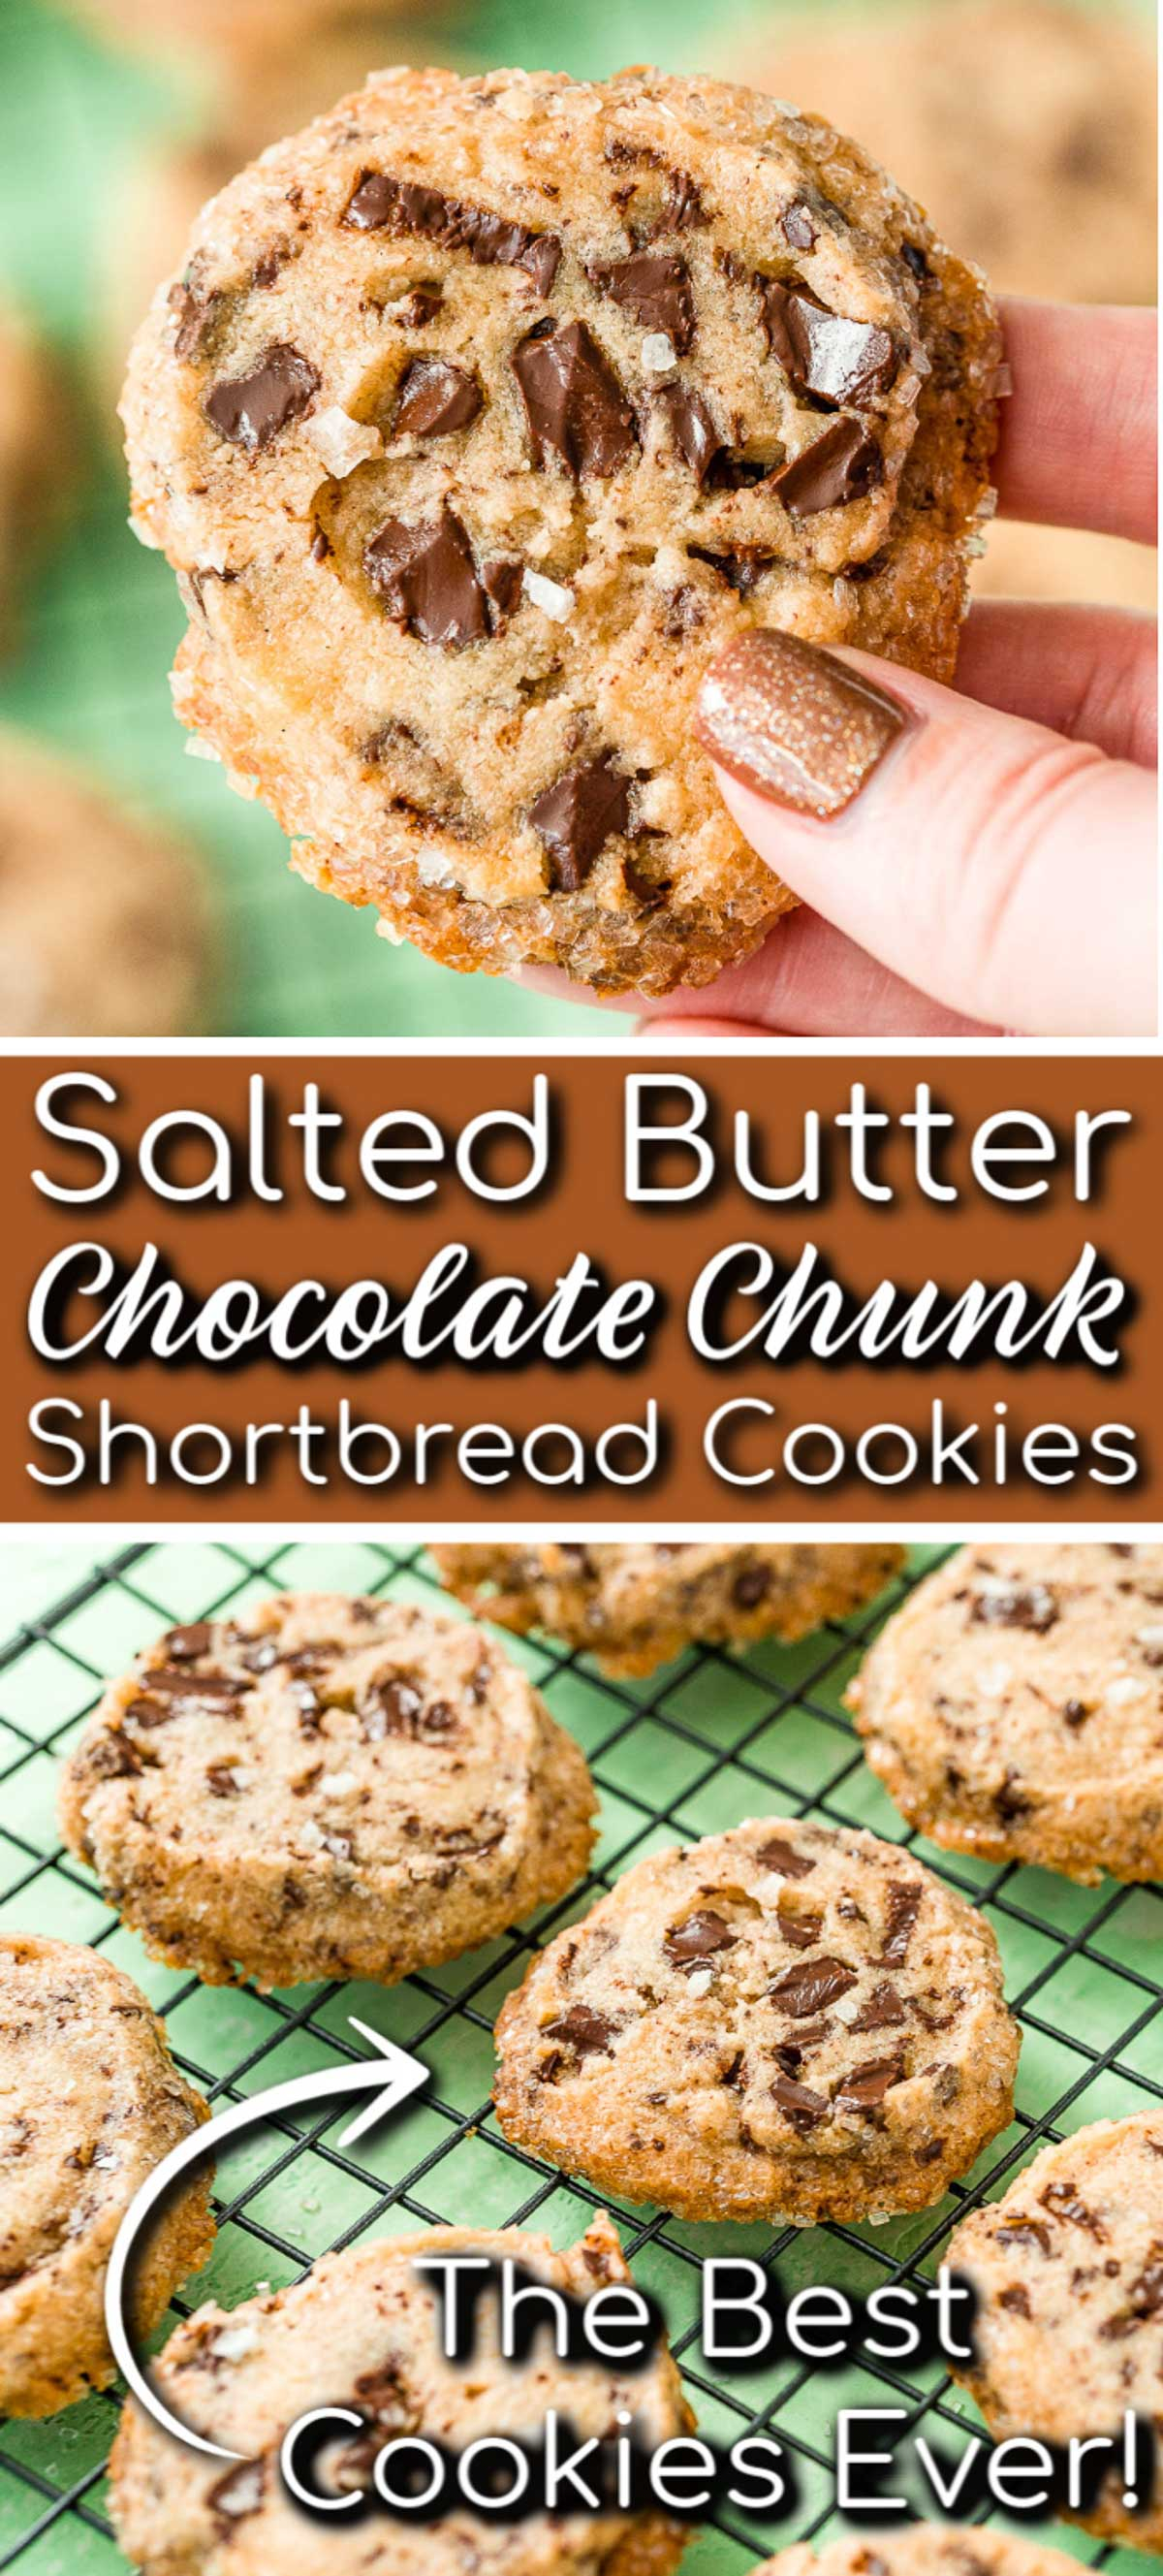 Salted Chocolate Chunk Shortbread Cookies took the internet by storm with their delicious sugar crust and crisp texture laced with chocolate and sprinkled with flaky sea salt! via @sugarandsoulco